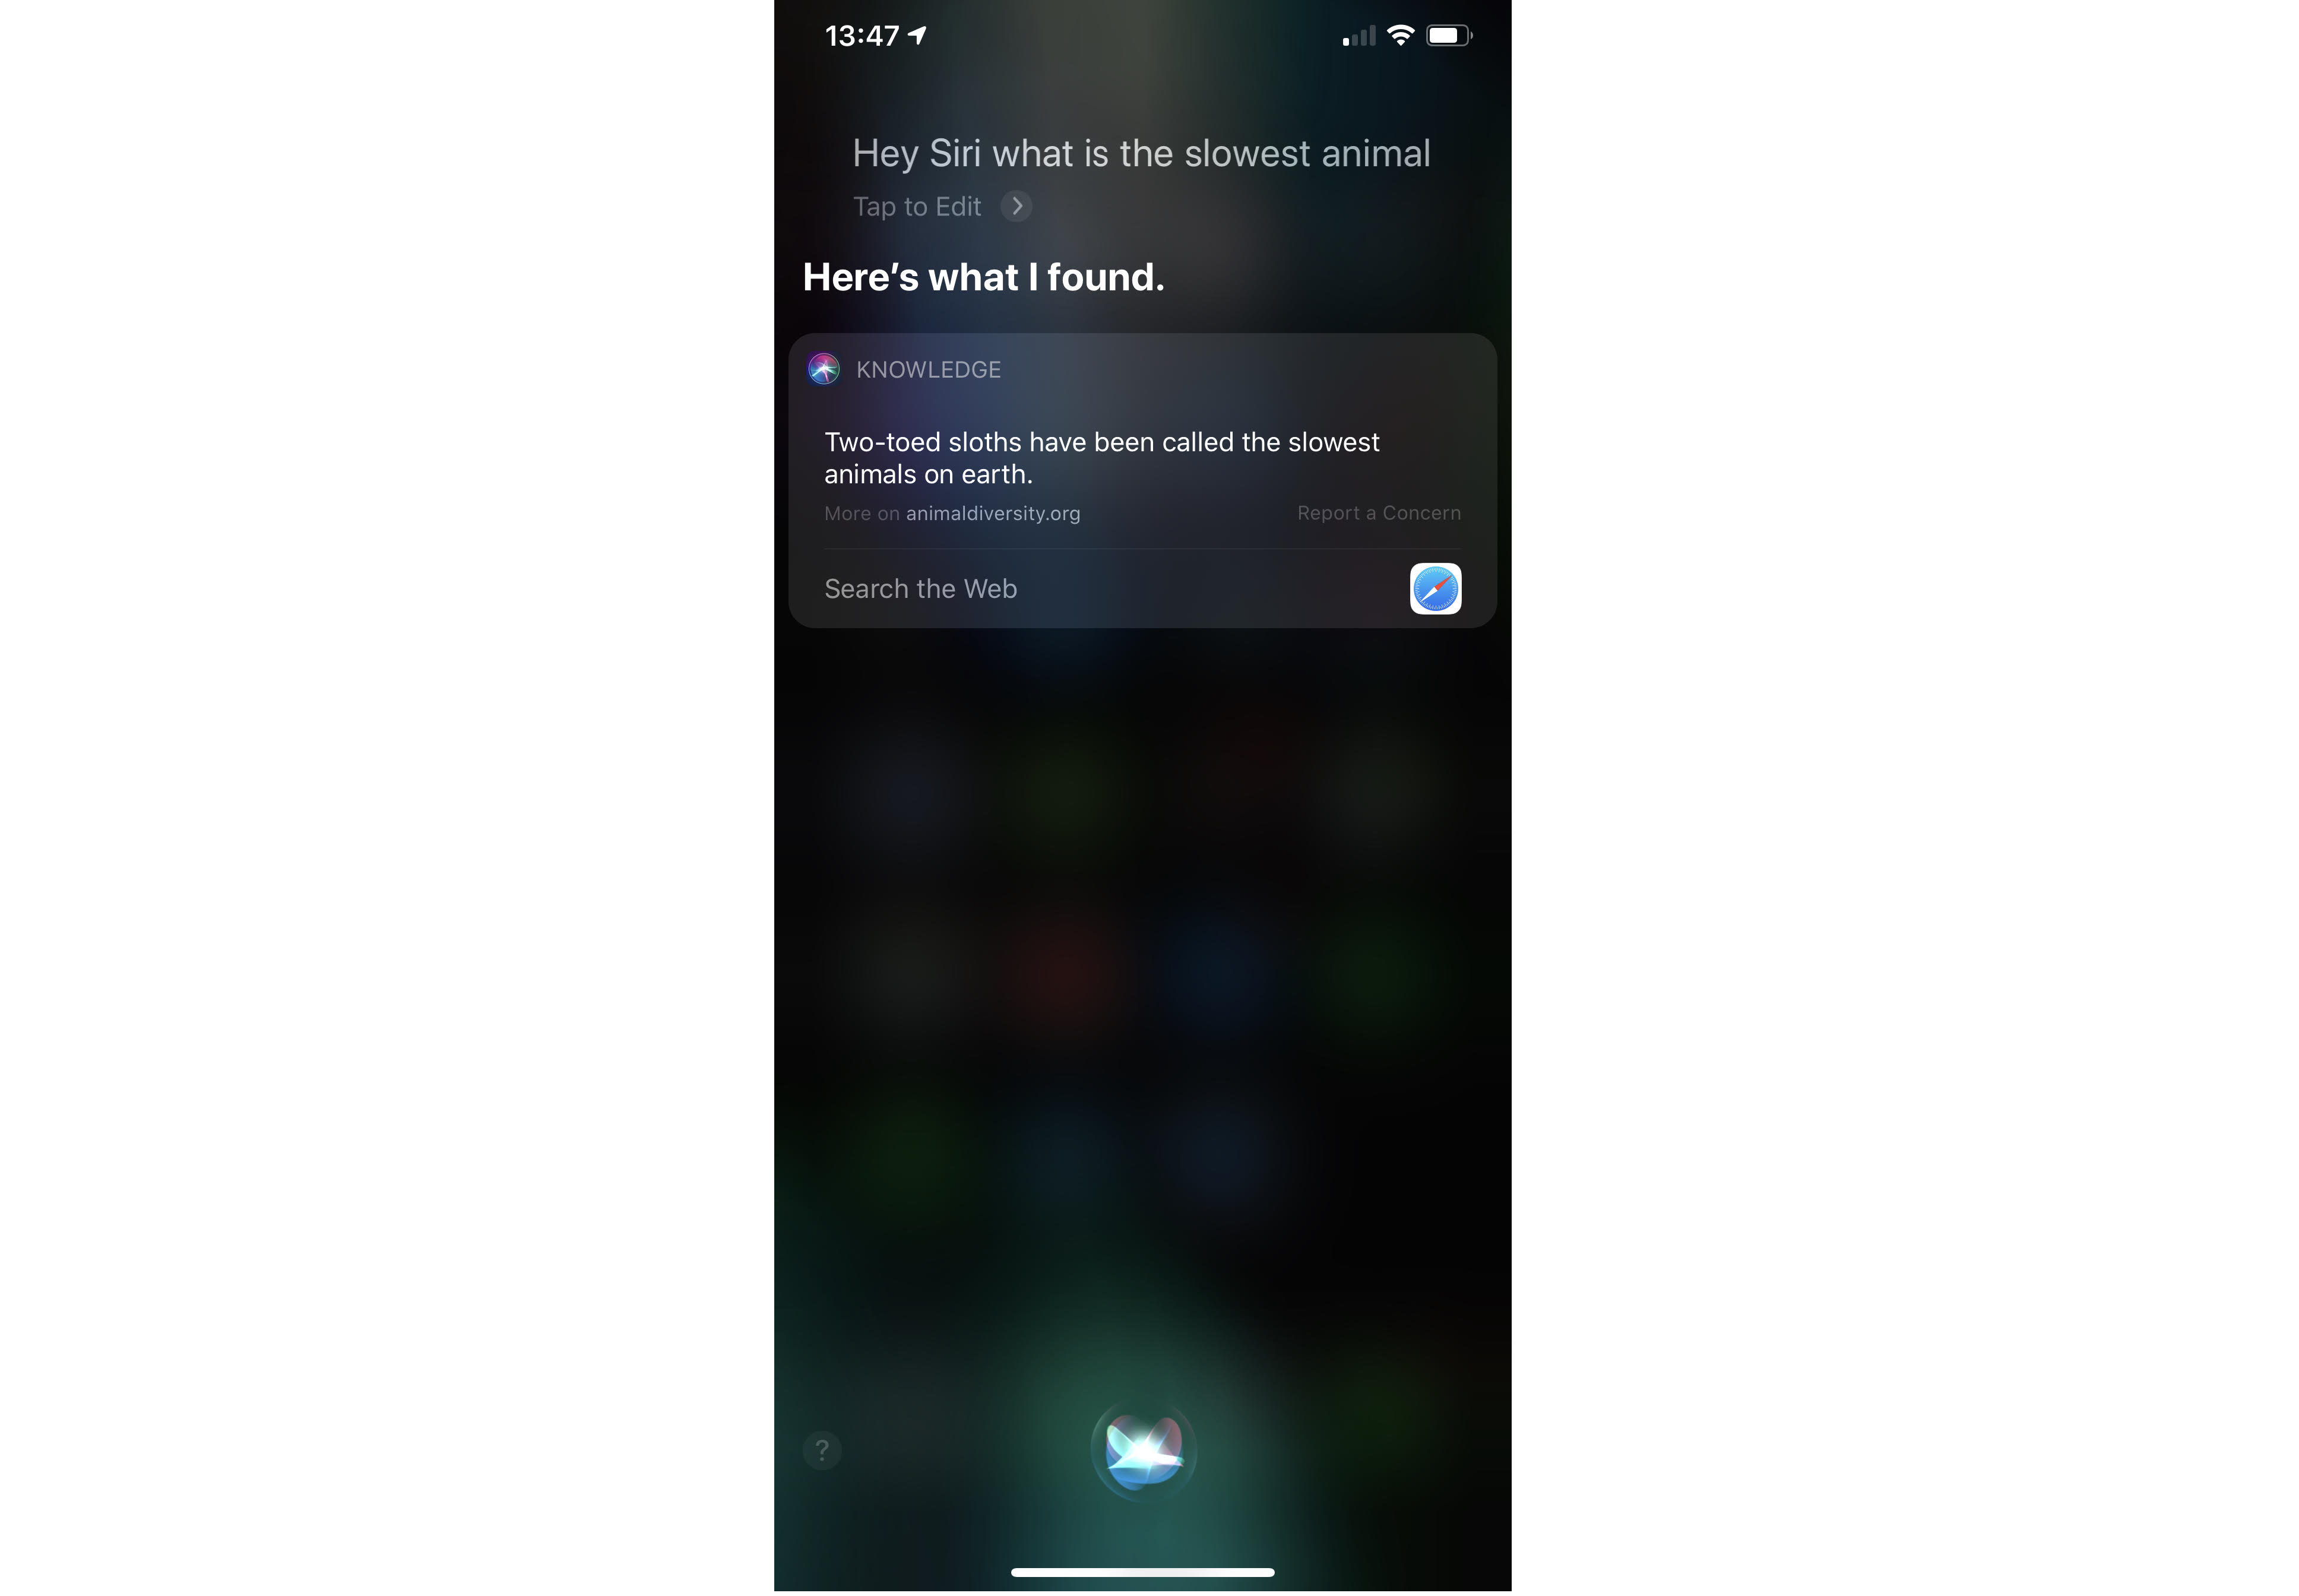 Siri search for slowest animal